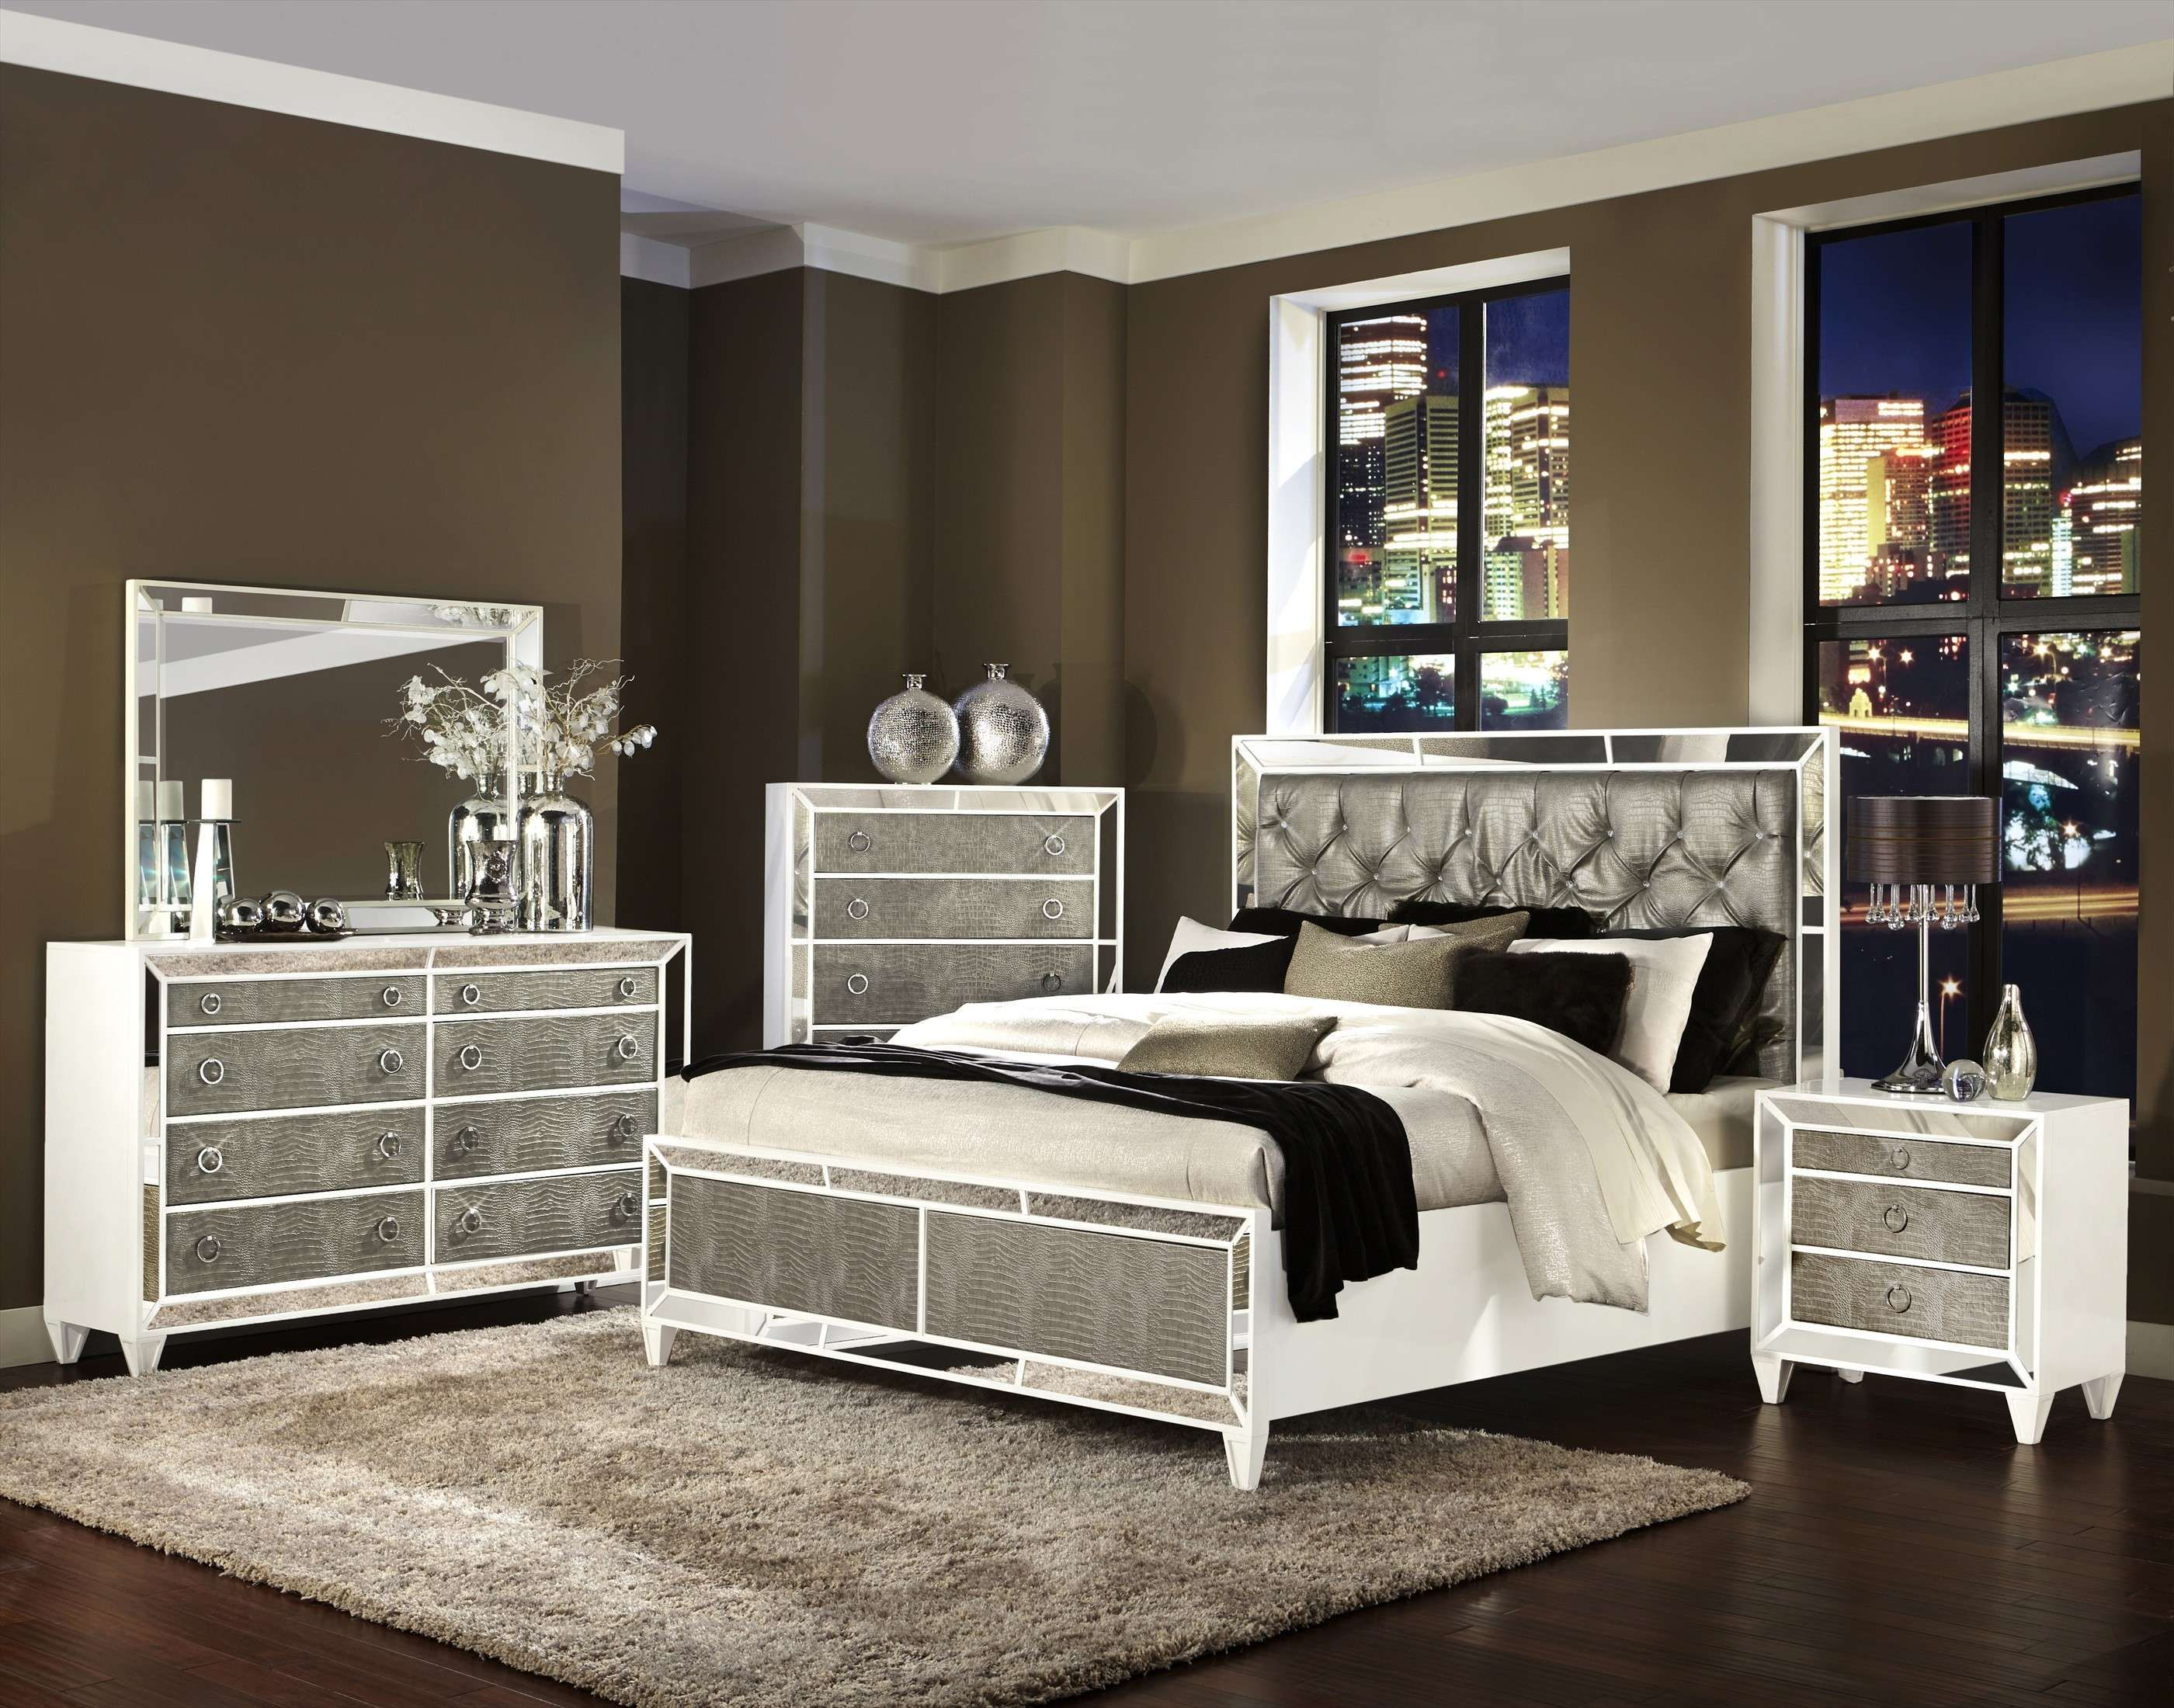 Mirrored Bedroom Furniture Sets In Home Design Trends Mirrored Bedroom Furniture French Style Bedroom Furniture Glass Bedroom Furniture